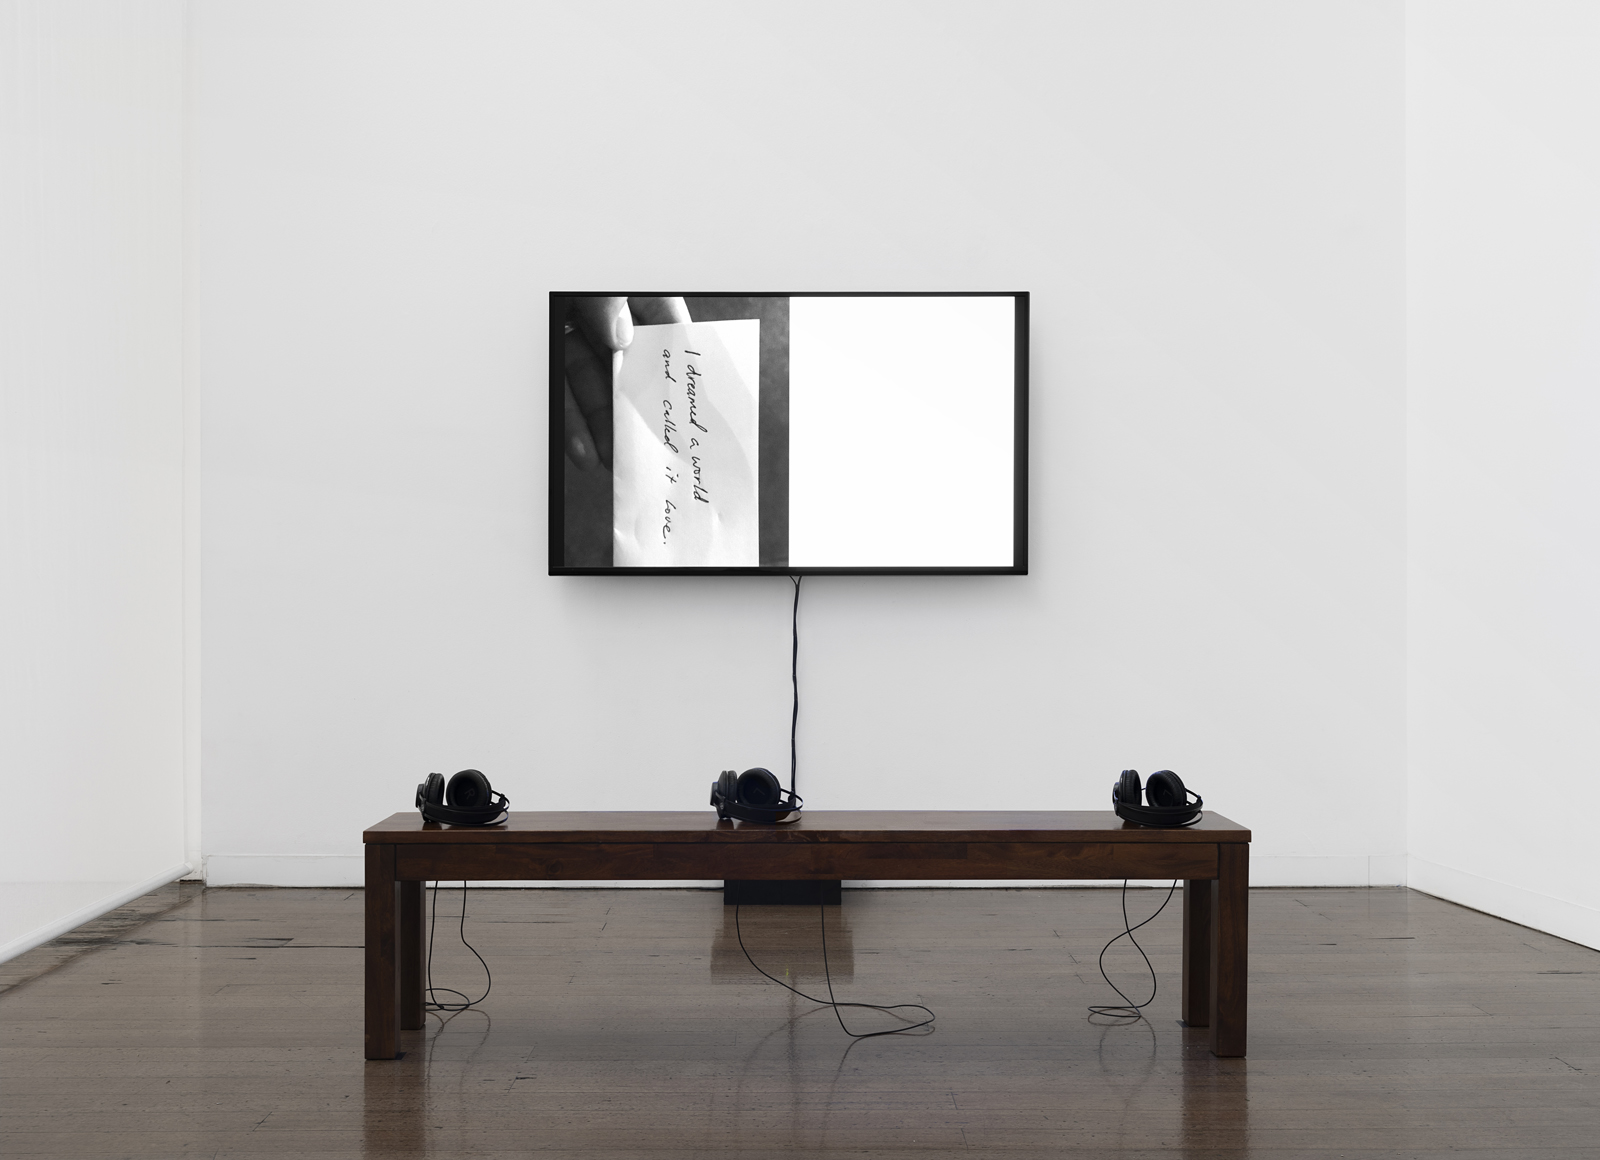 SAM SHMITH   the sacredness of something  Installation view 2019